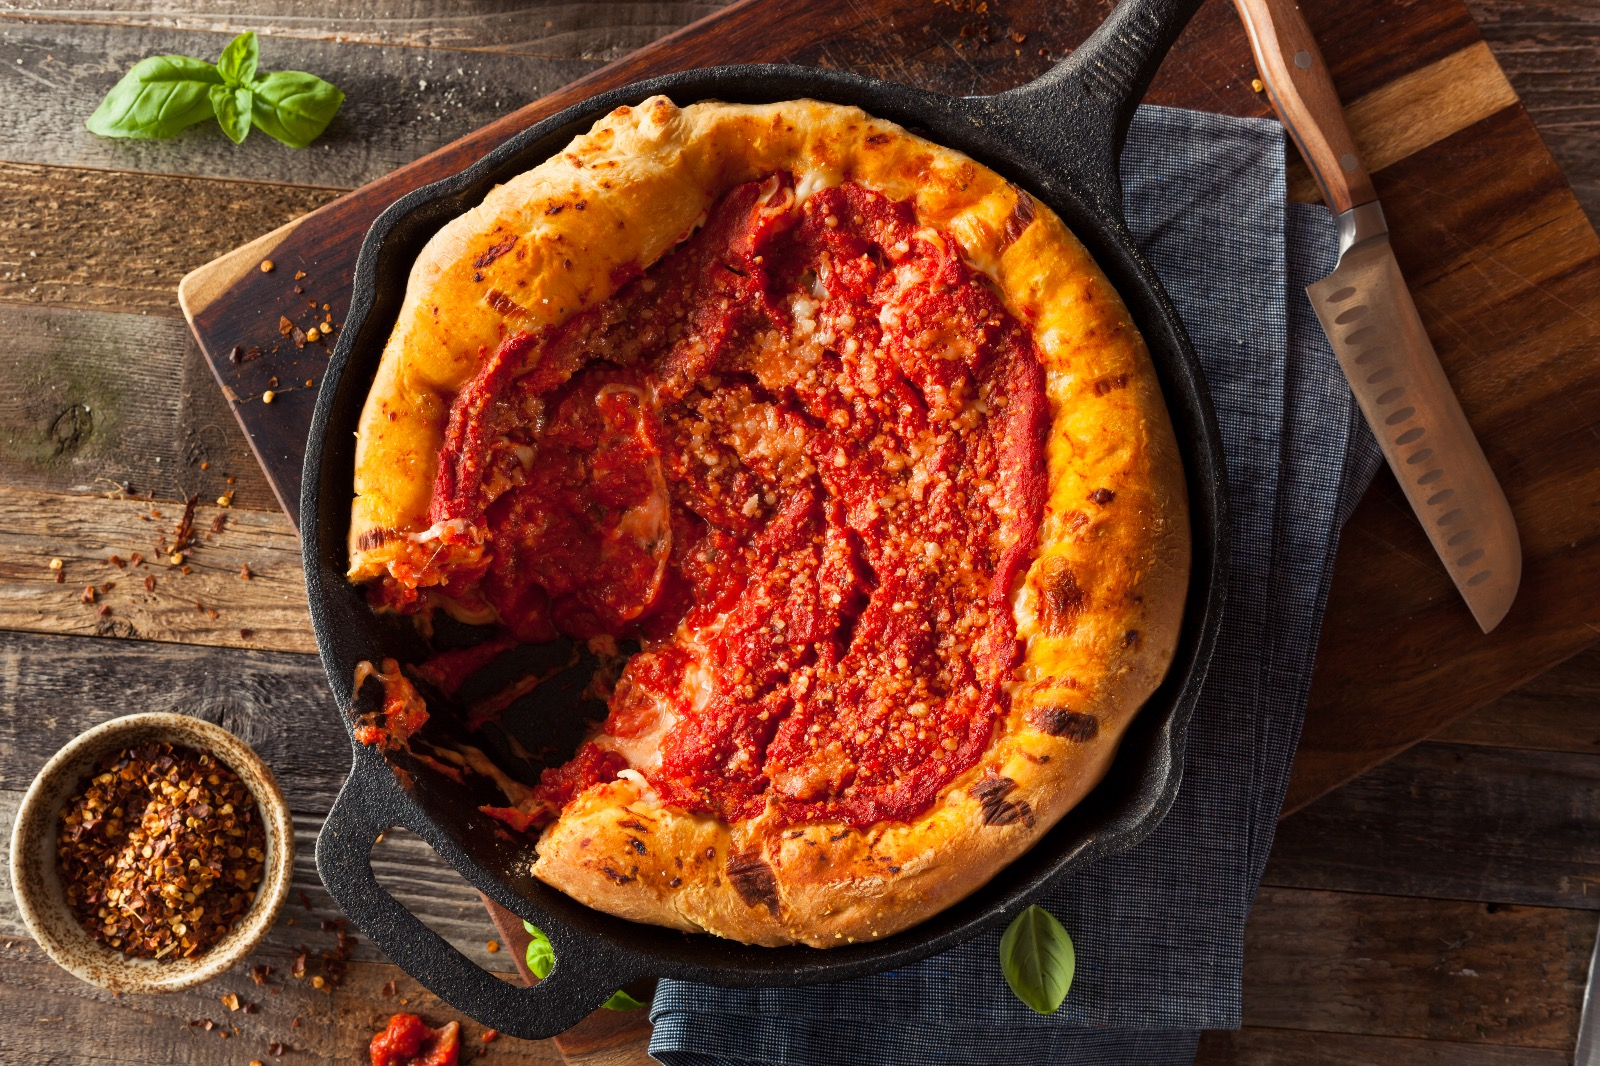 Chicago Style Pizza With Bison, Duck Bacon & Mushrooms - Beck & Bulow